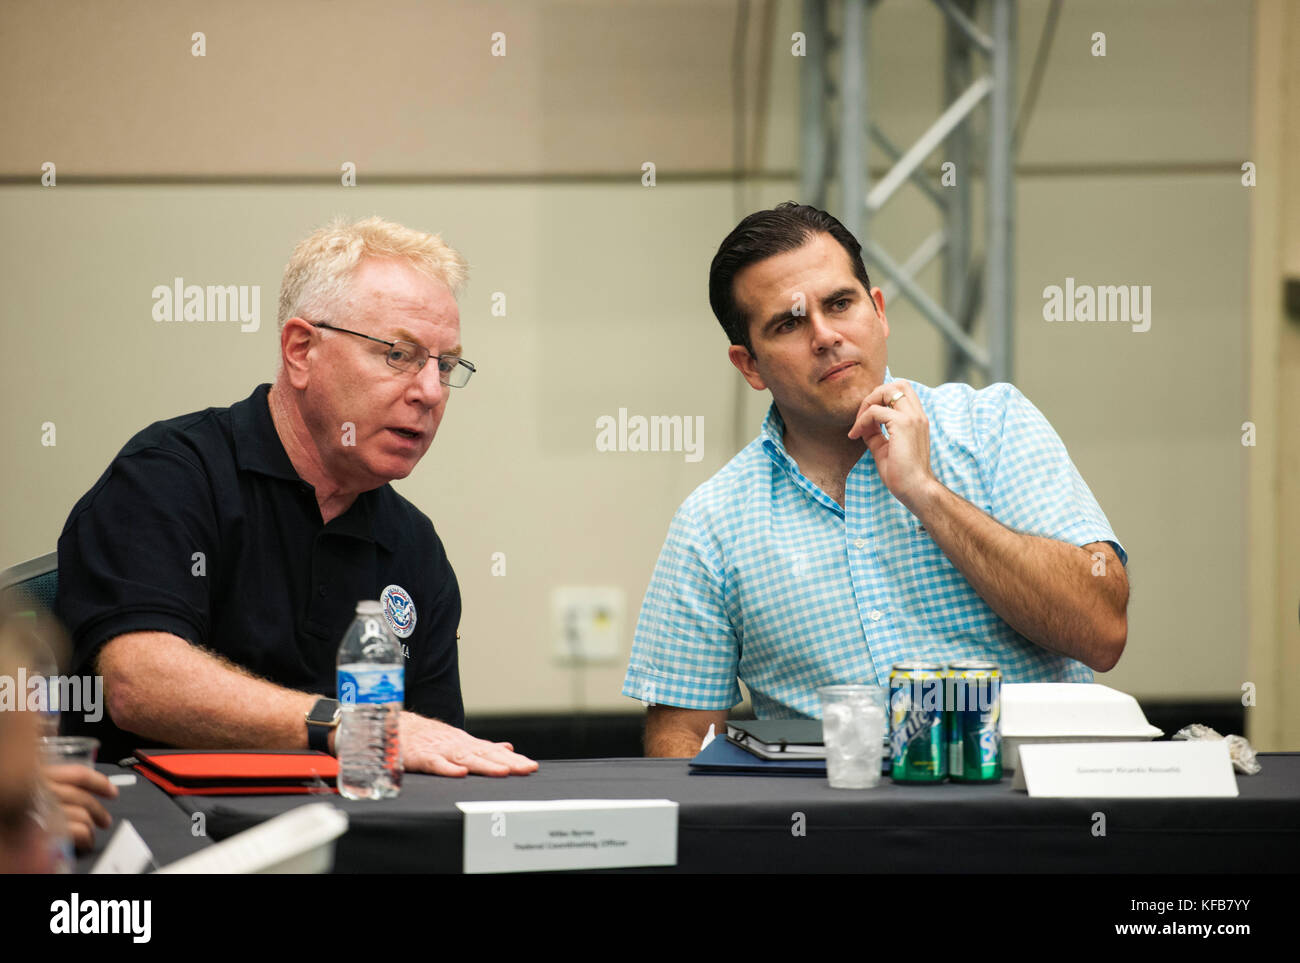 Federal Emergency Management Agency (FEMA) Federal Coordinating Officer Michael Byrne (left) meets with Puerto Rican - Stock Image